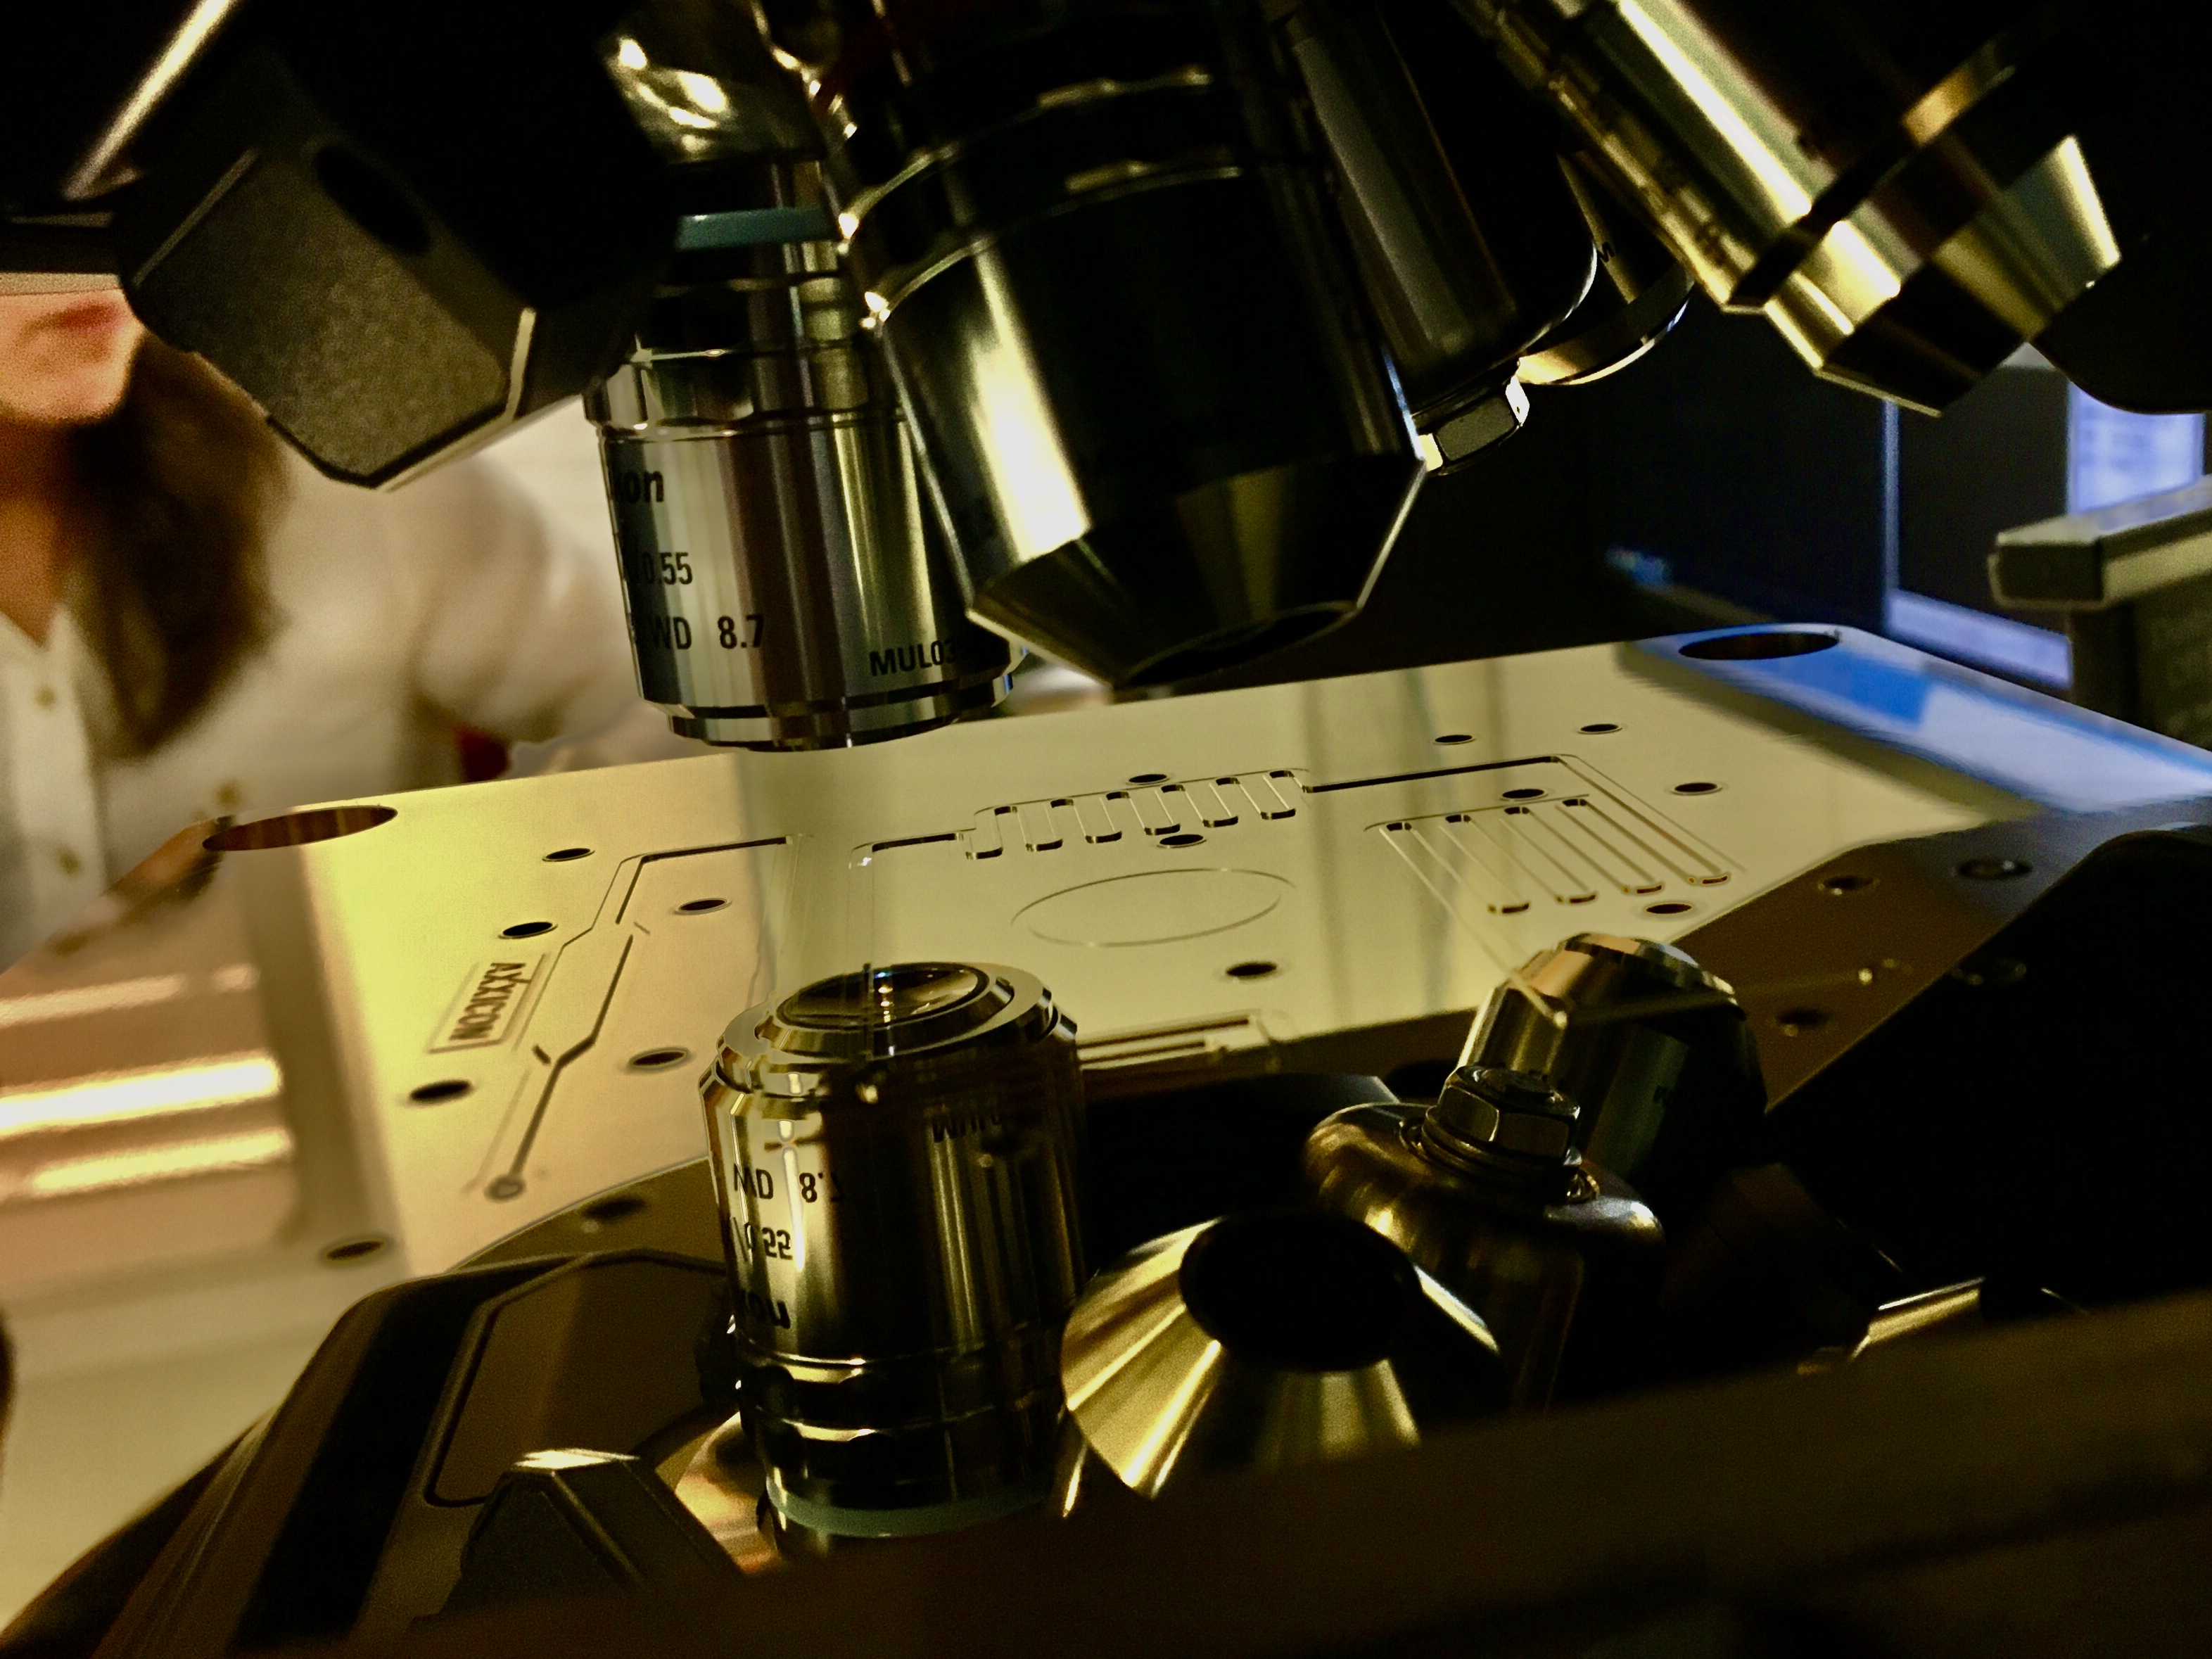 How to select the right prototyping process for your microfluidic consumable